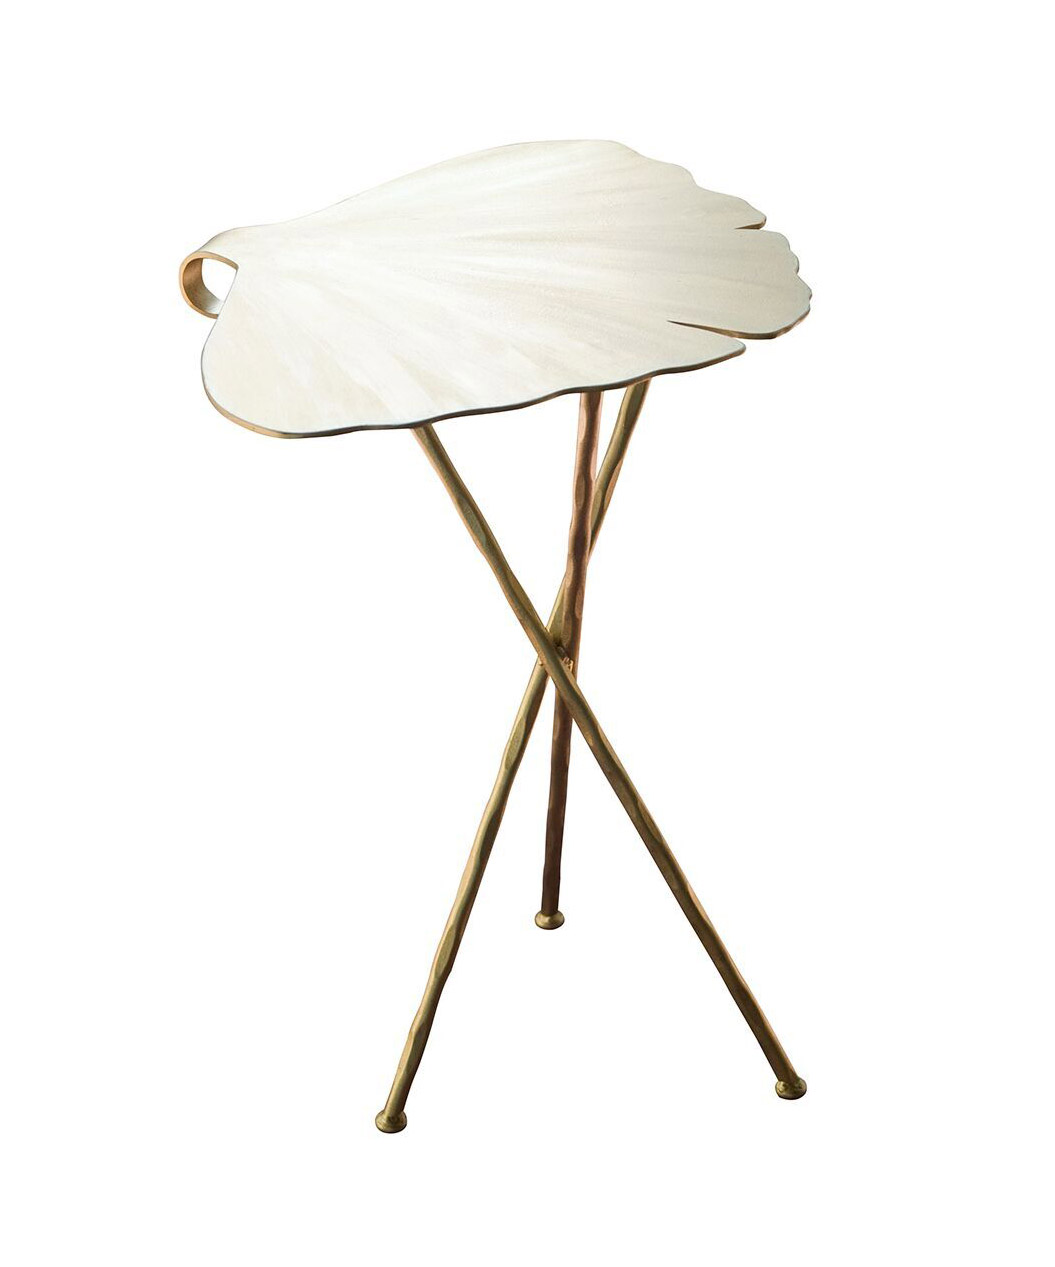 Ginkgo_Leaf_Side-Table_1